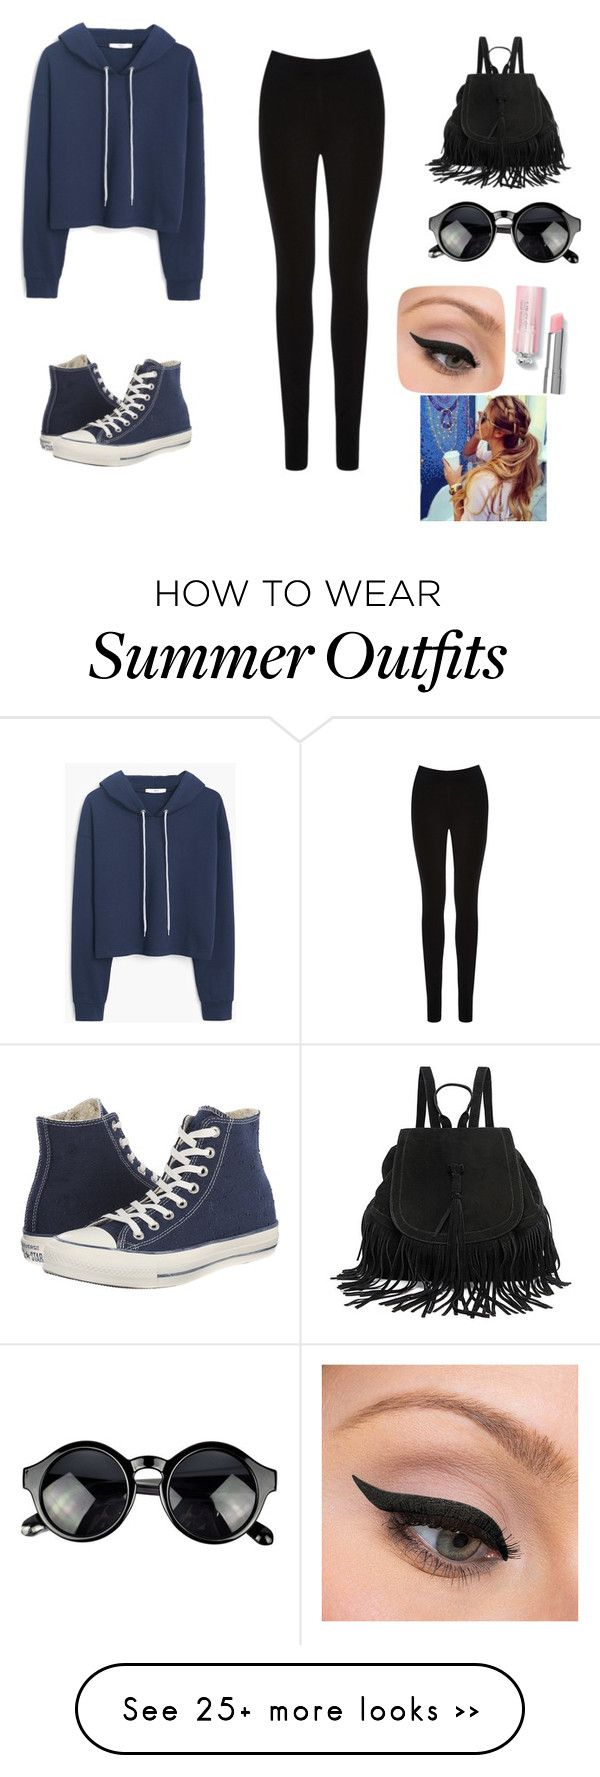 """""""Casual day outfit"""" by fiza-1 on Polyvore featuring moda, MANGO, Oasis, Converse y LORAC"""